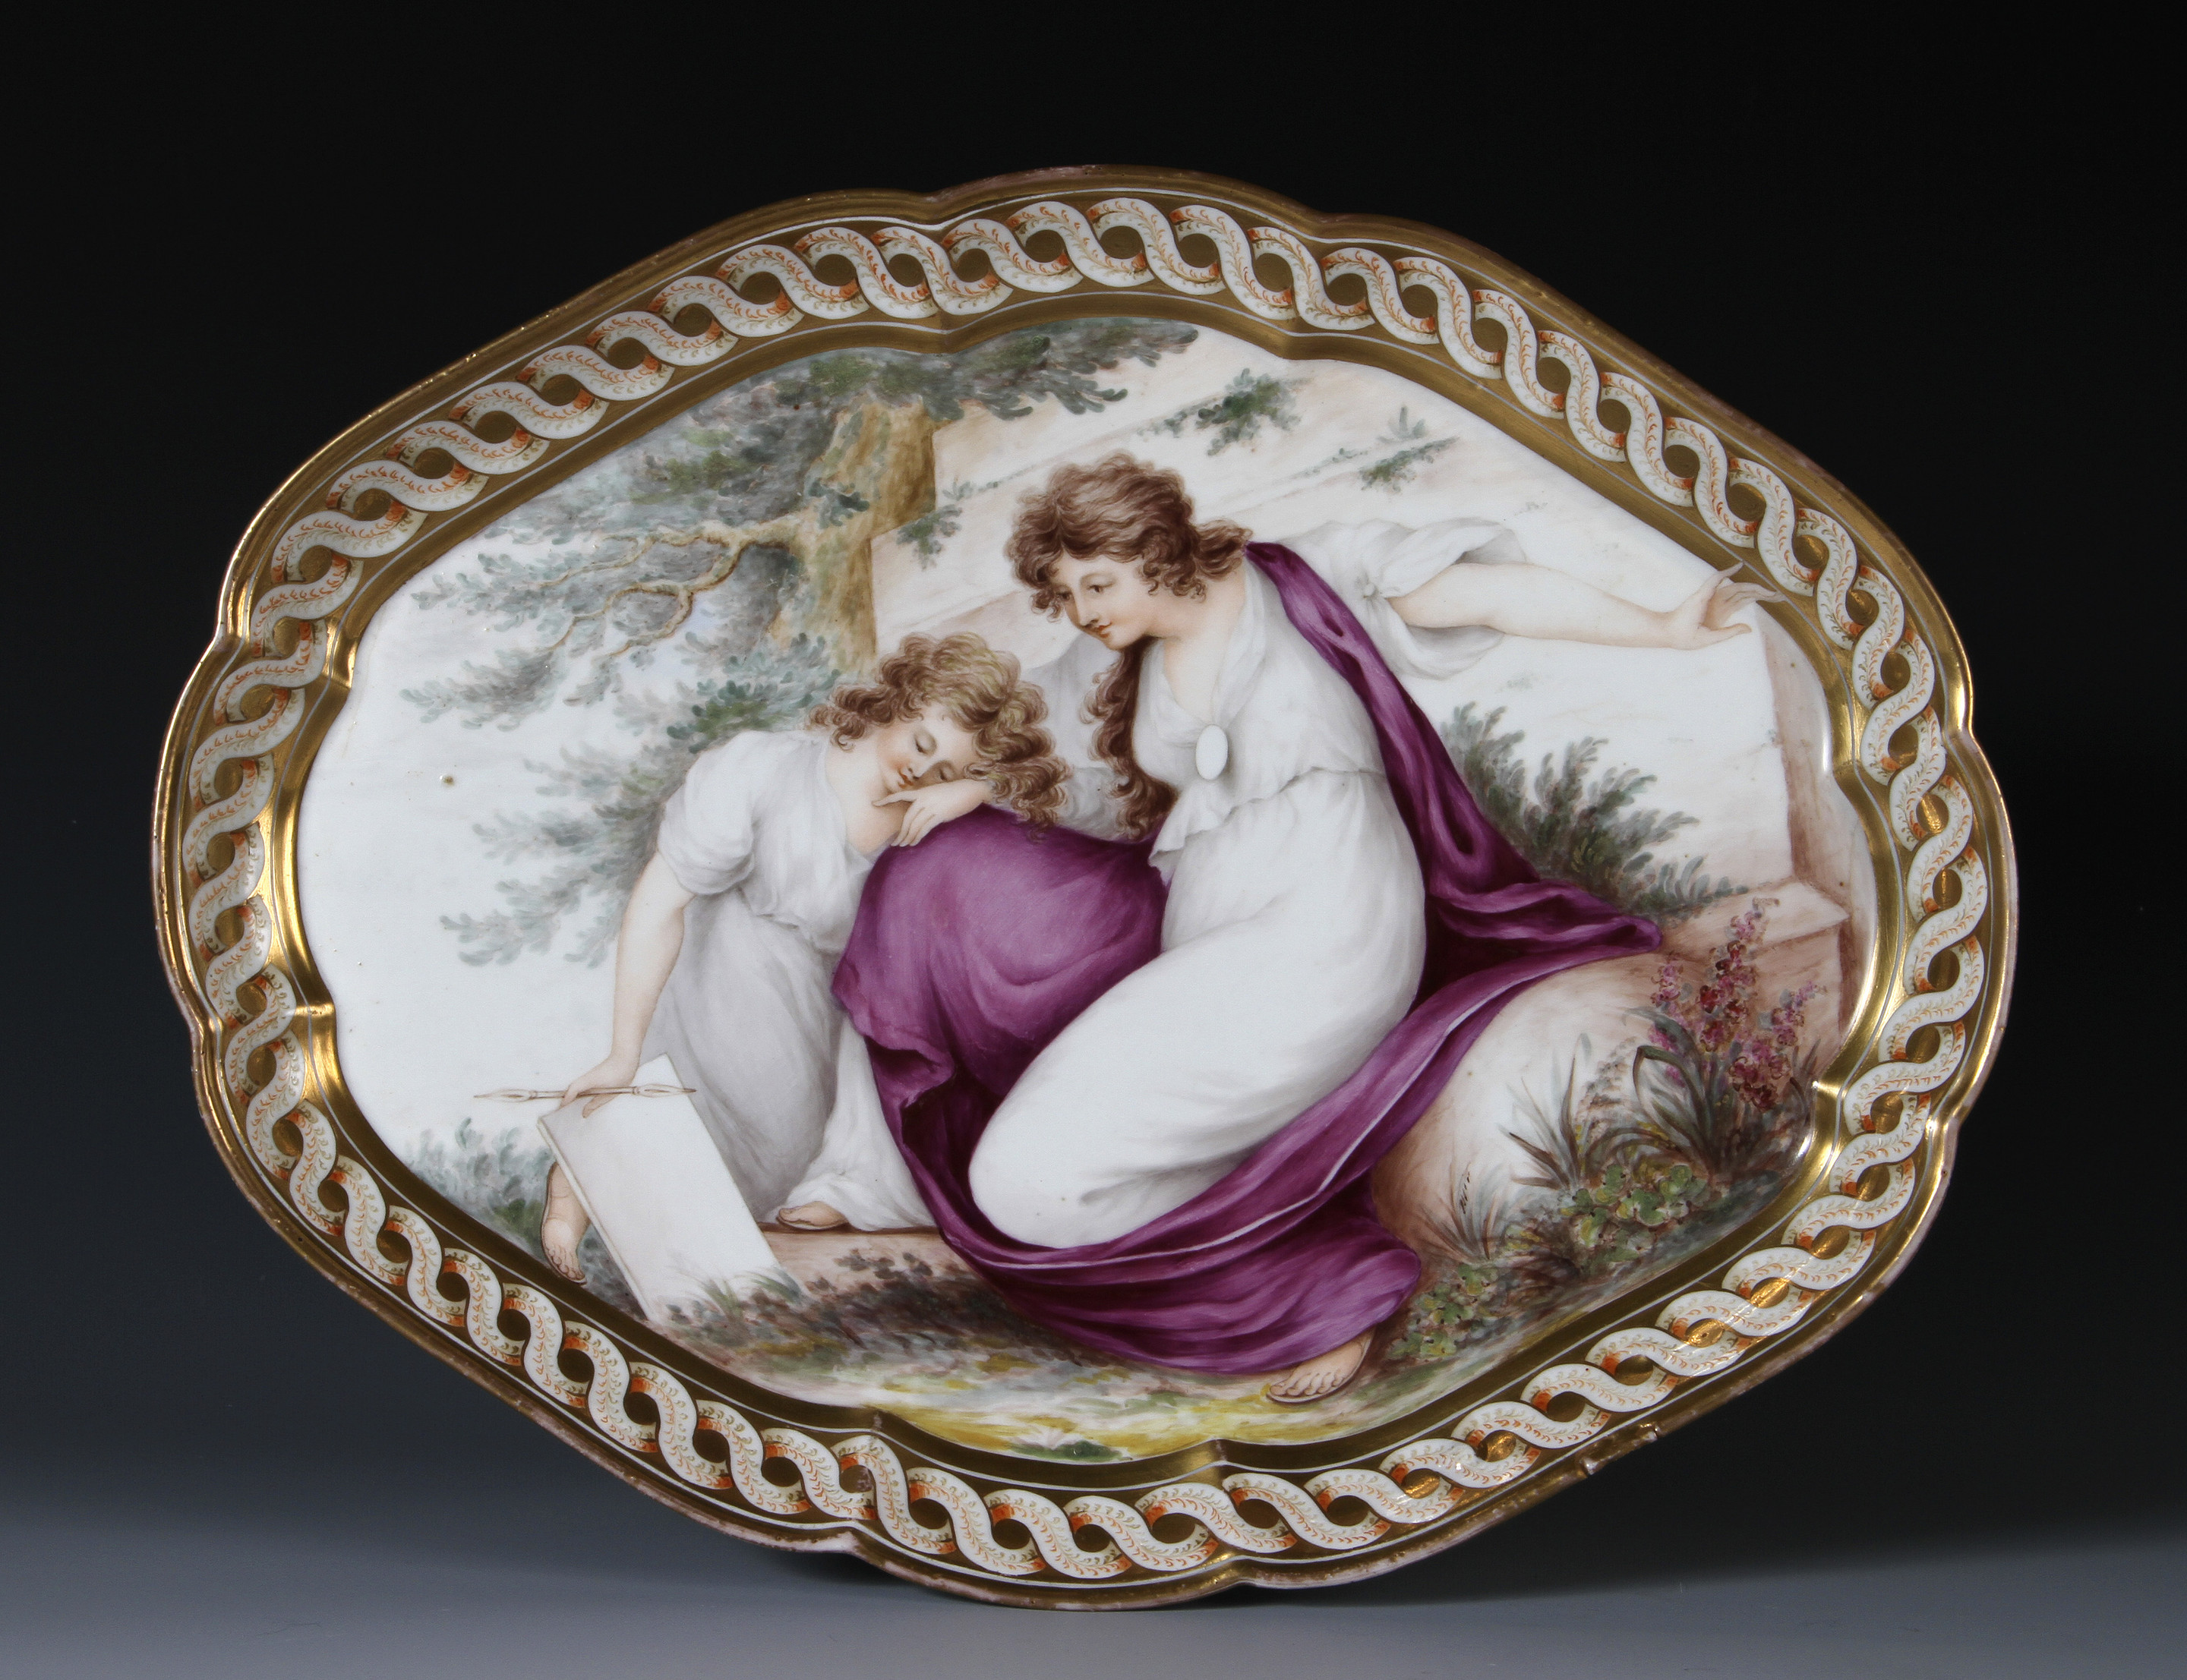 A Coalport Porcelain Tray decorated in the london workshop of Thomas Baxter